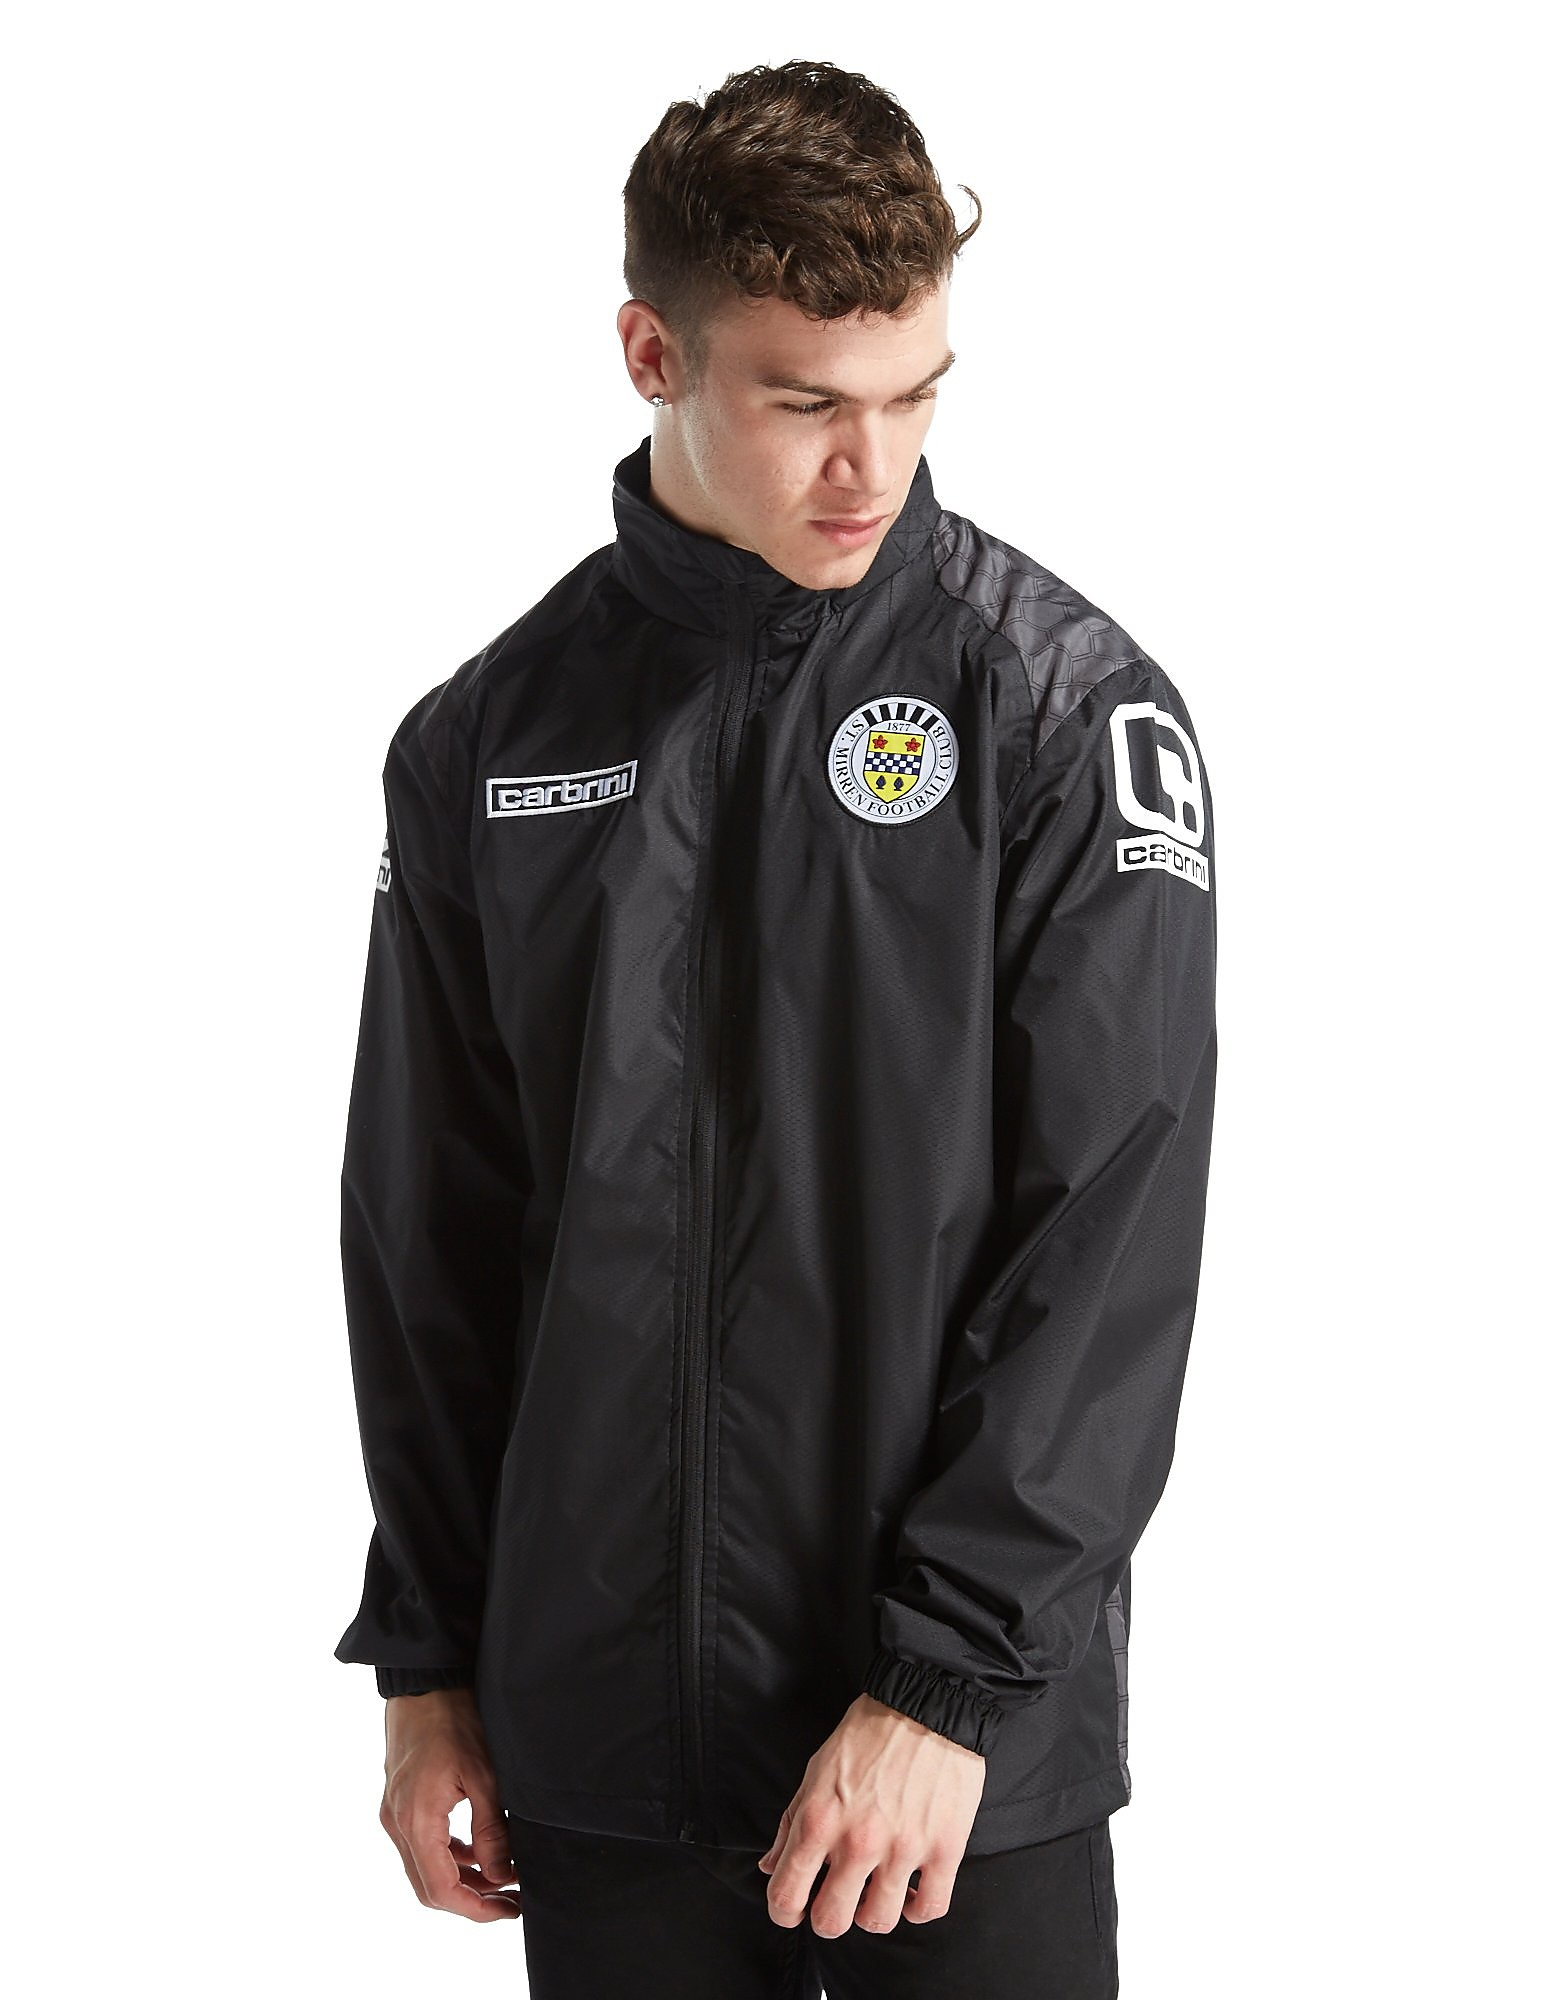 Carbrini St. Mirren FC 2015/16 Shower Jacket